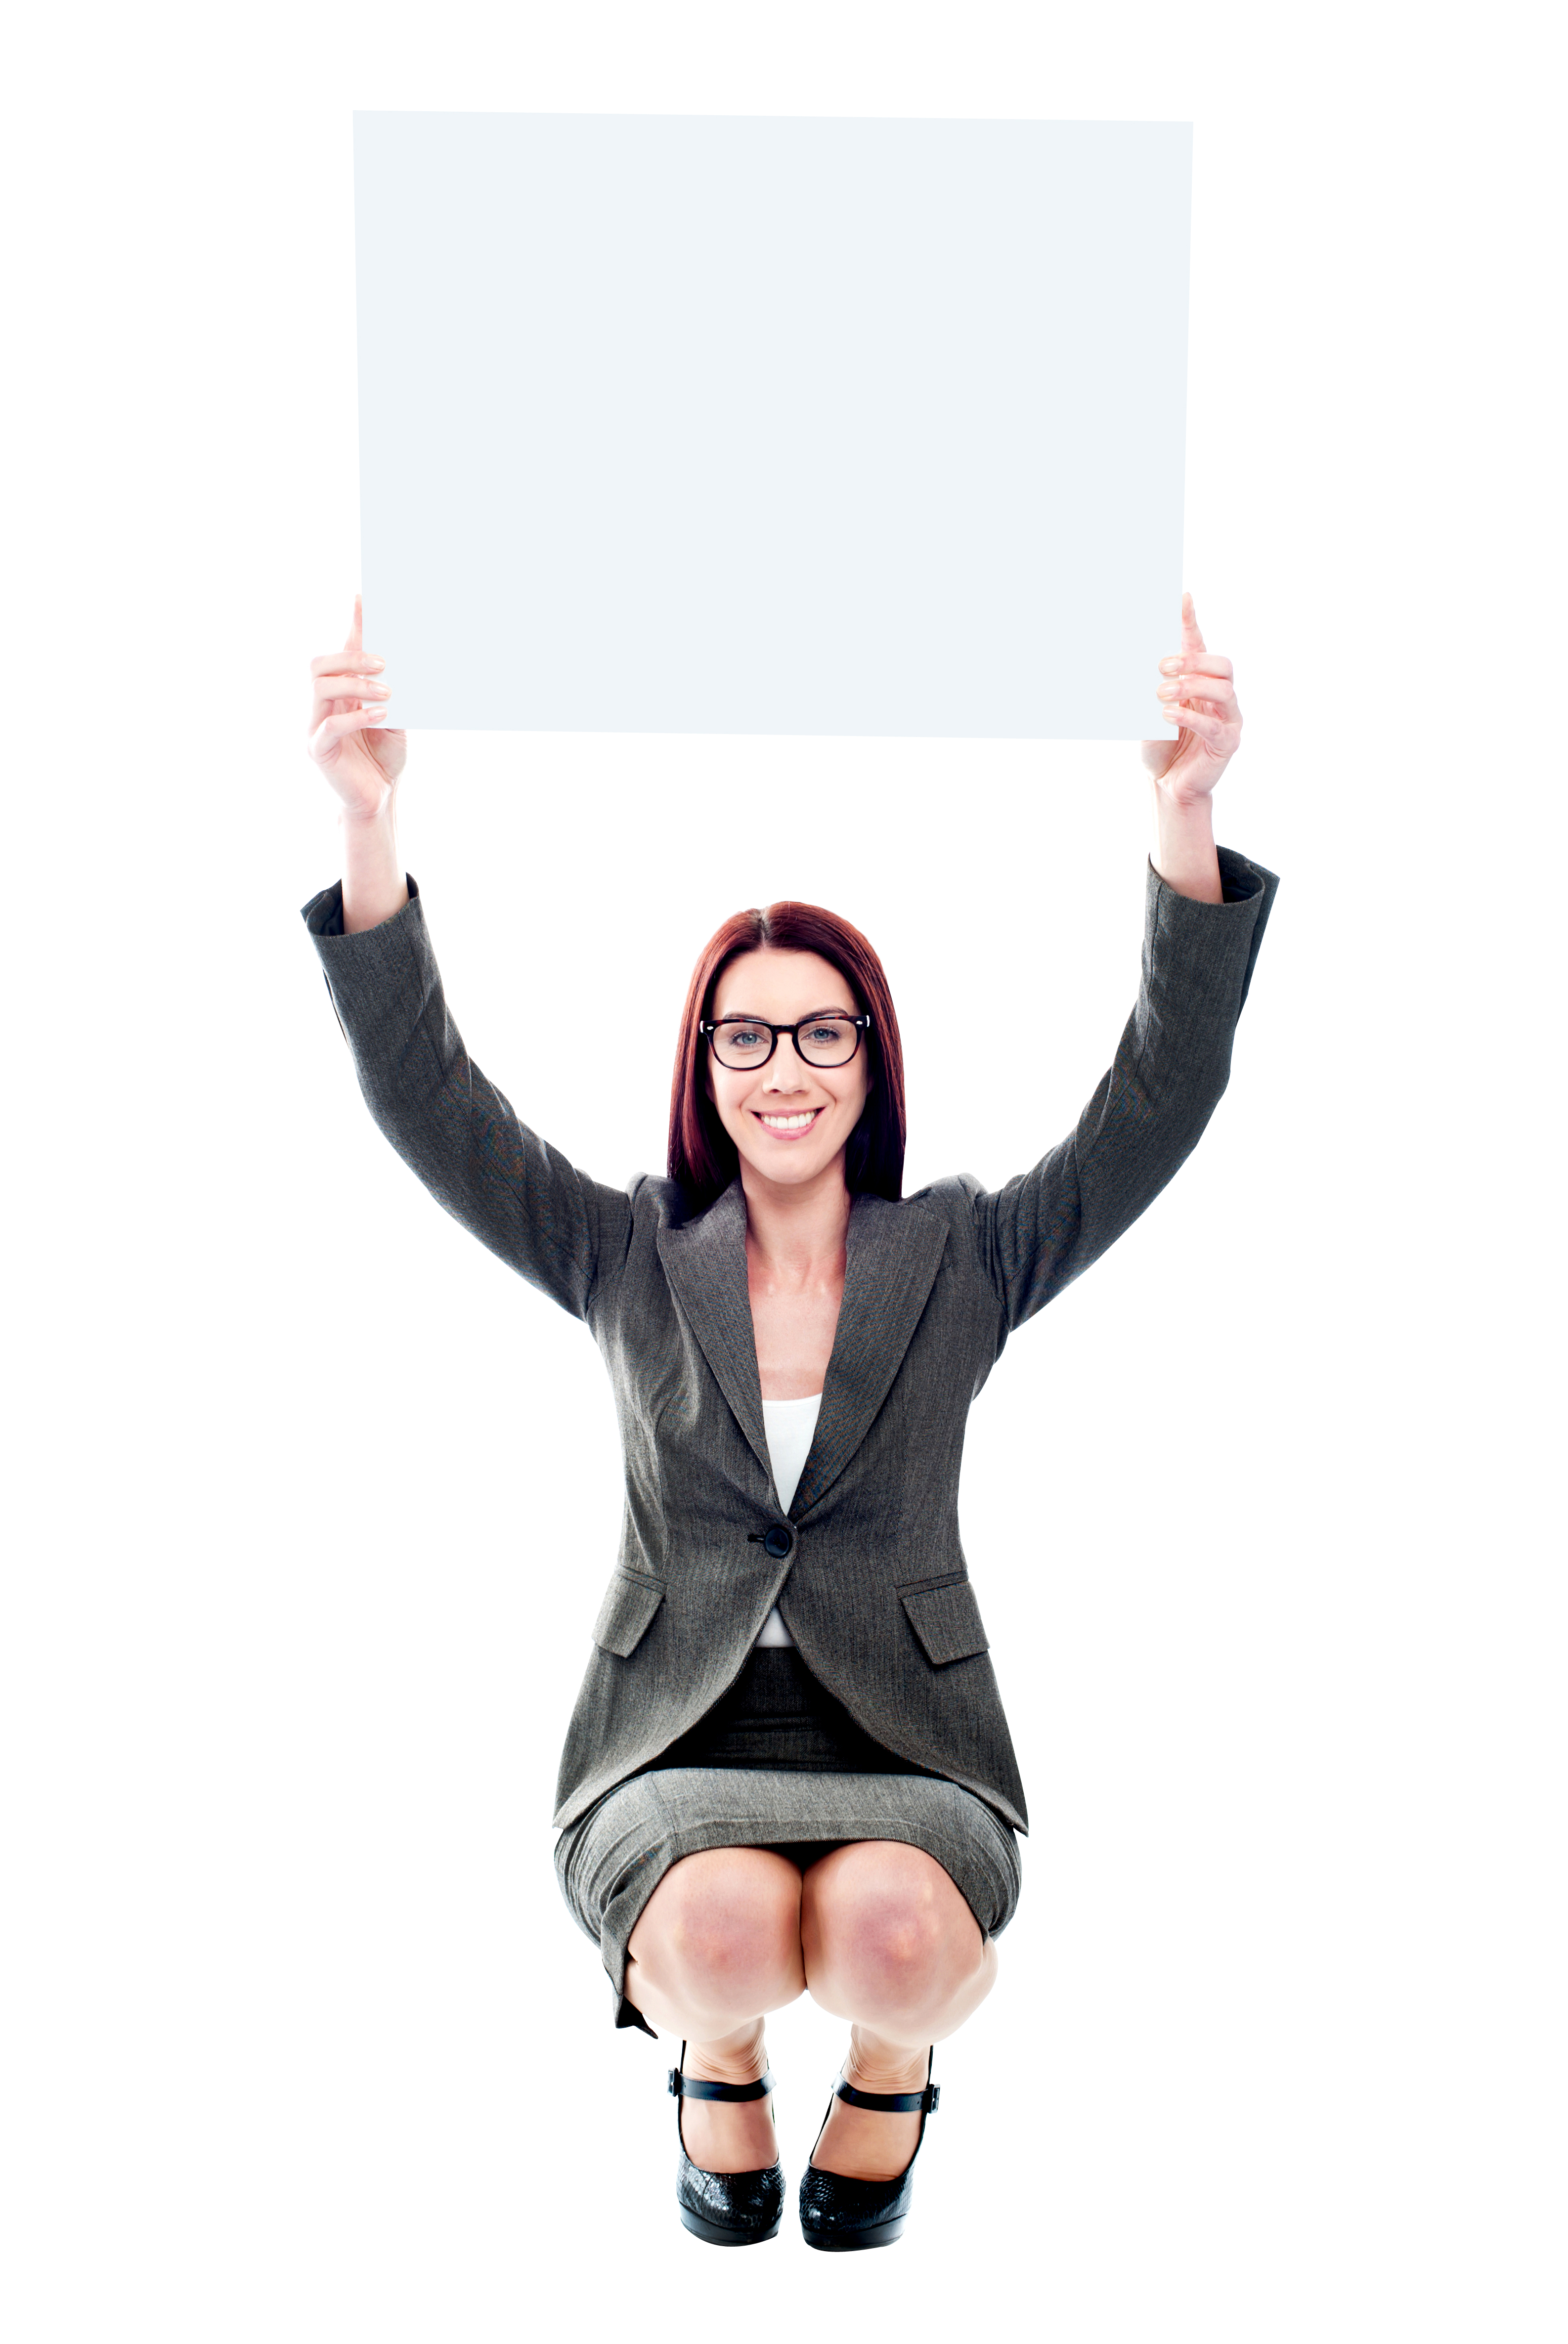 Free png images for commercial use. Hd transparent girl holding